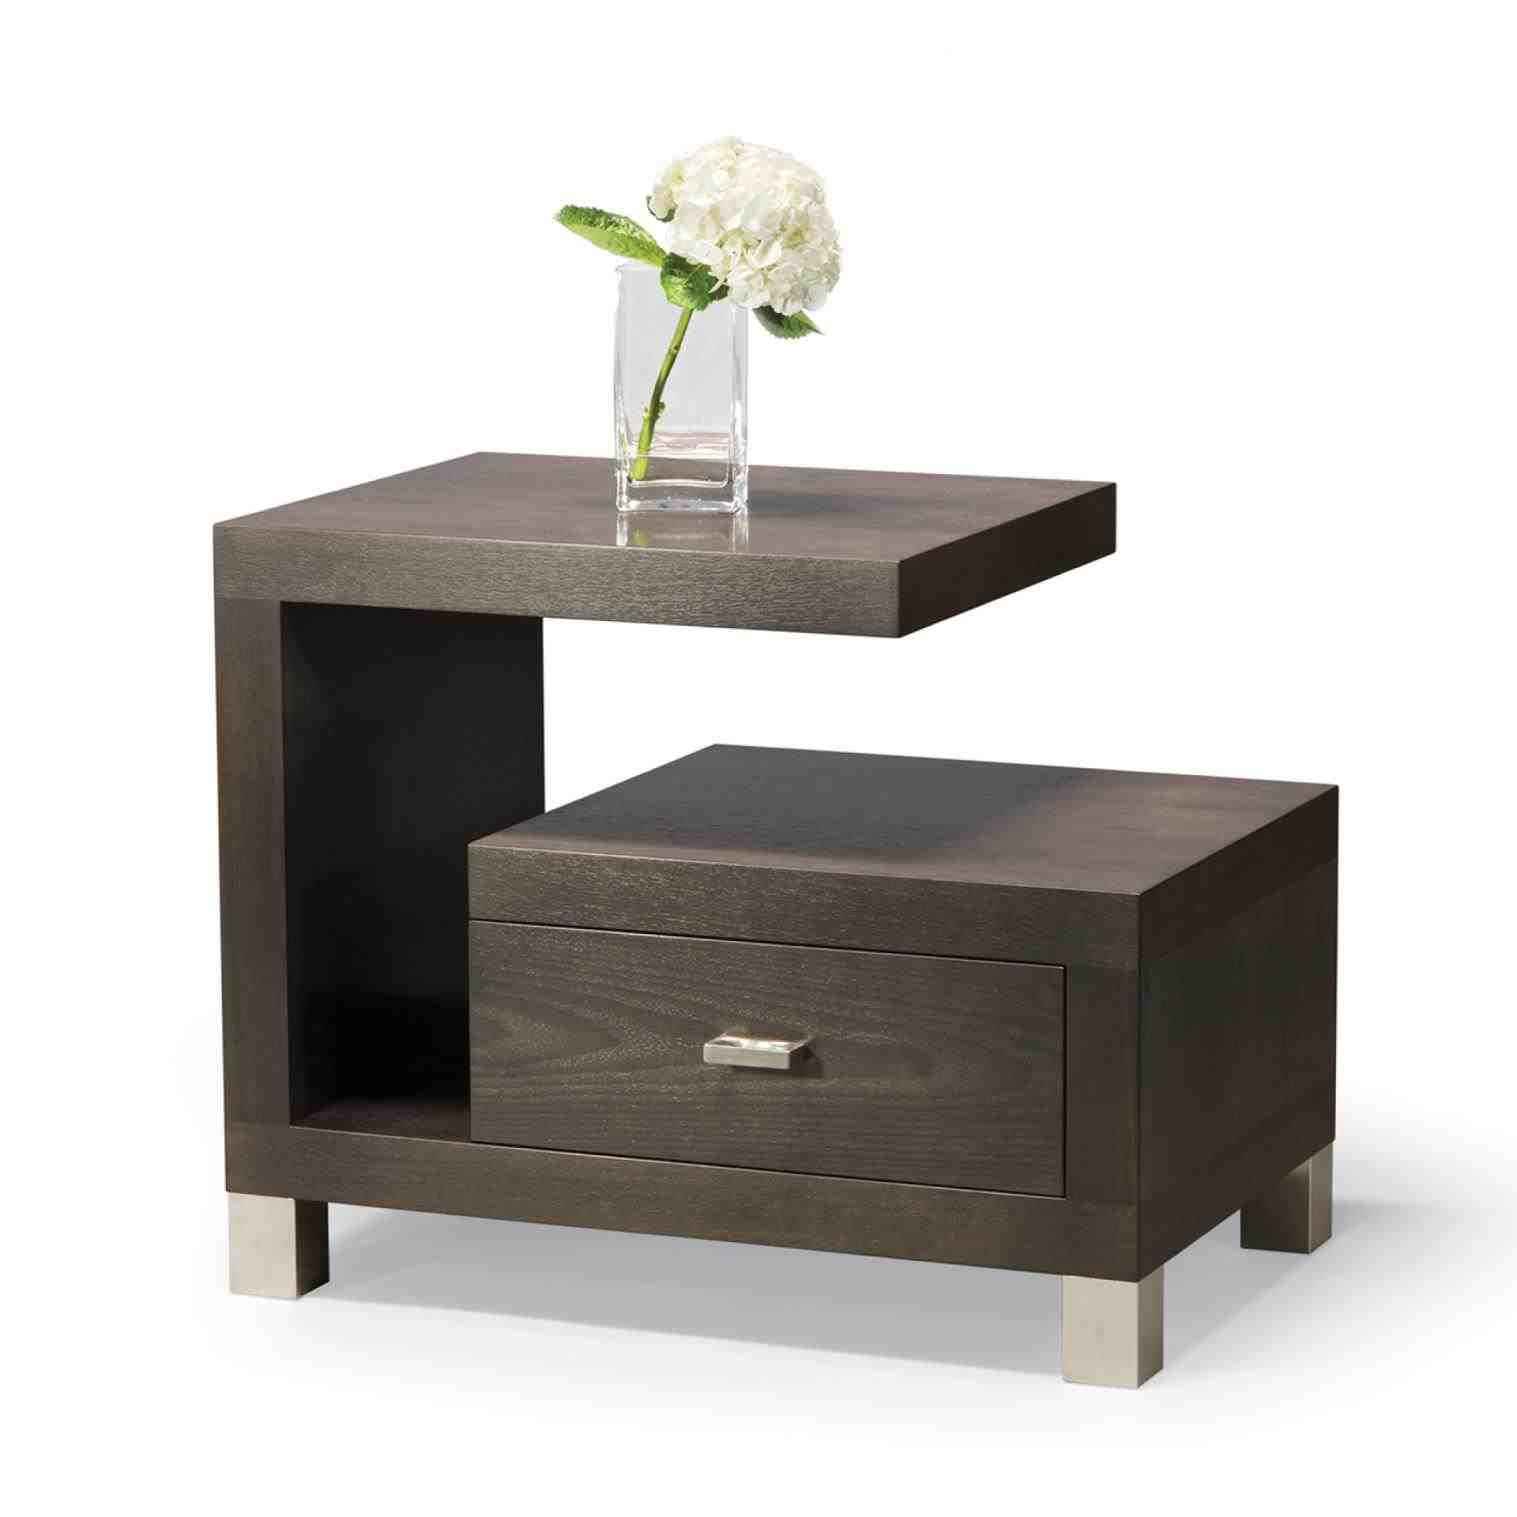 Small Black Bedside Table Bedside Table Design Modern Bedside Table Contemporary Nightstand